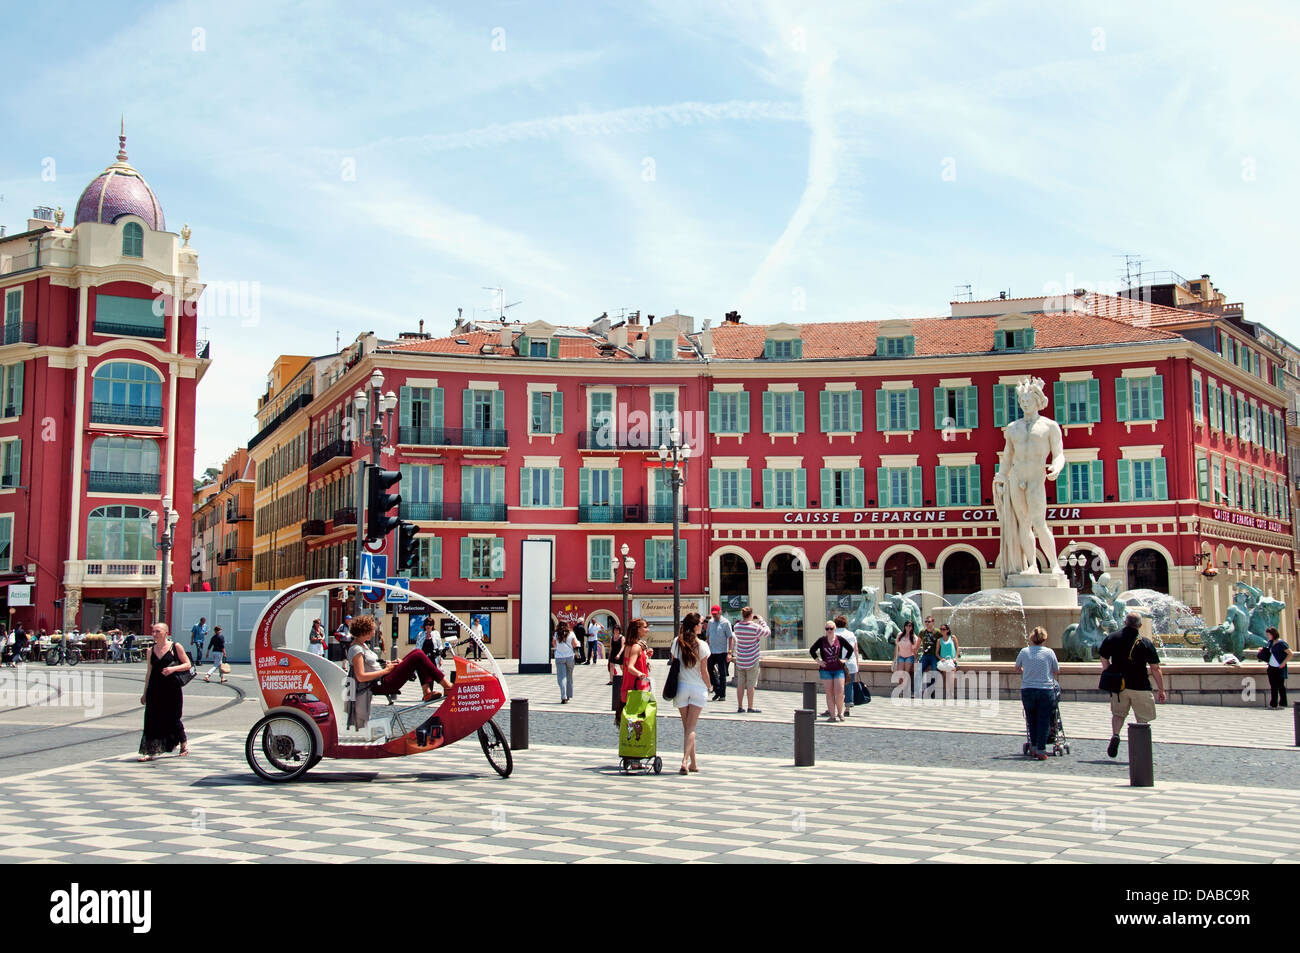 Fontaine du soleil fountain of the sun nice place massena french stock photo royalty free - Place massena nice ...